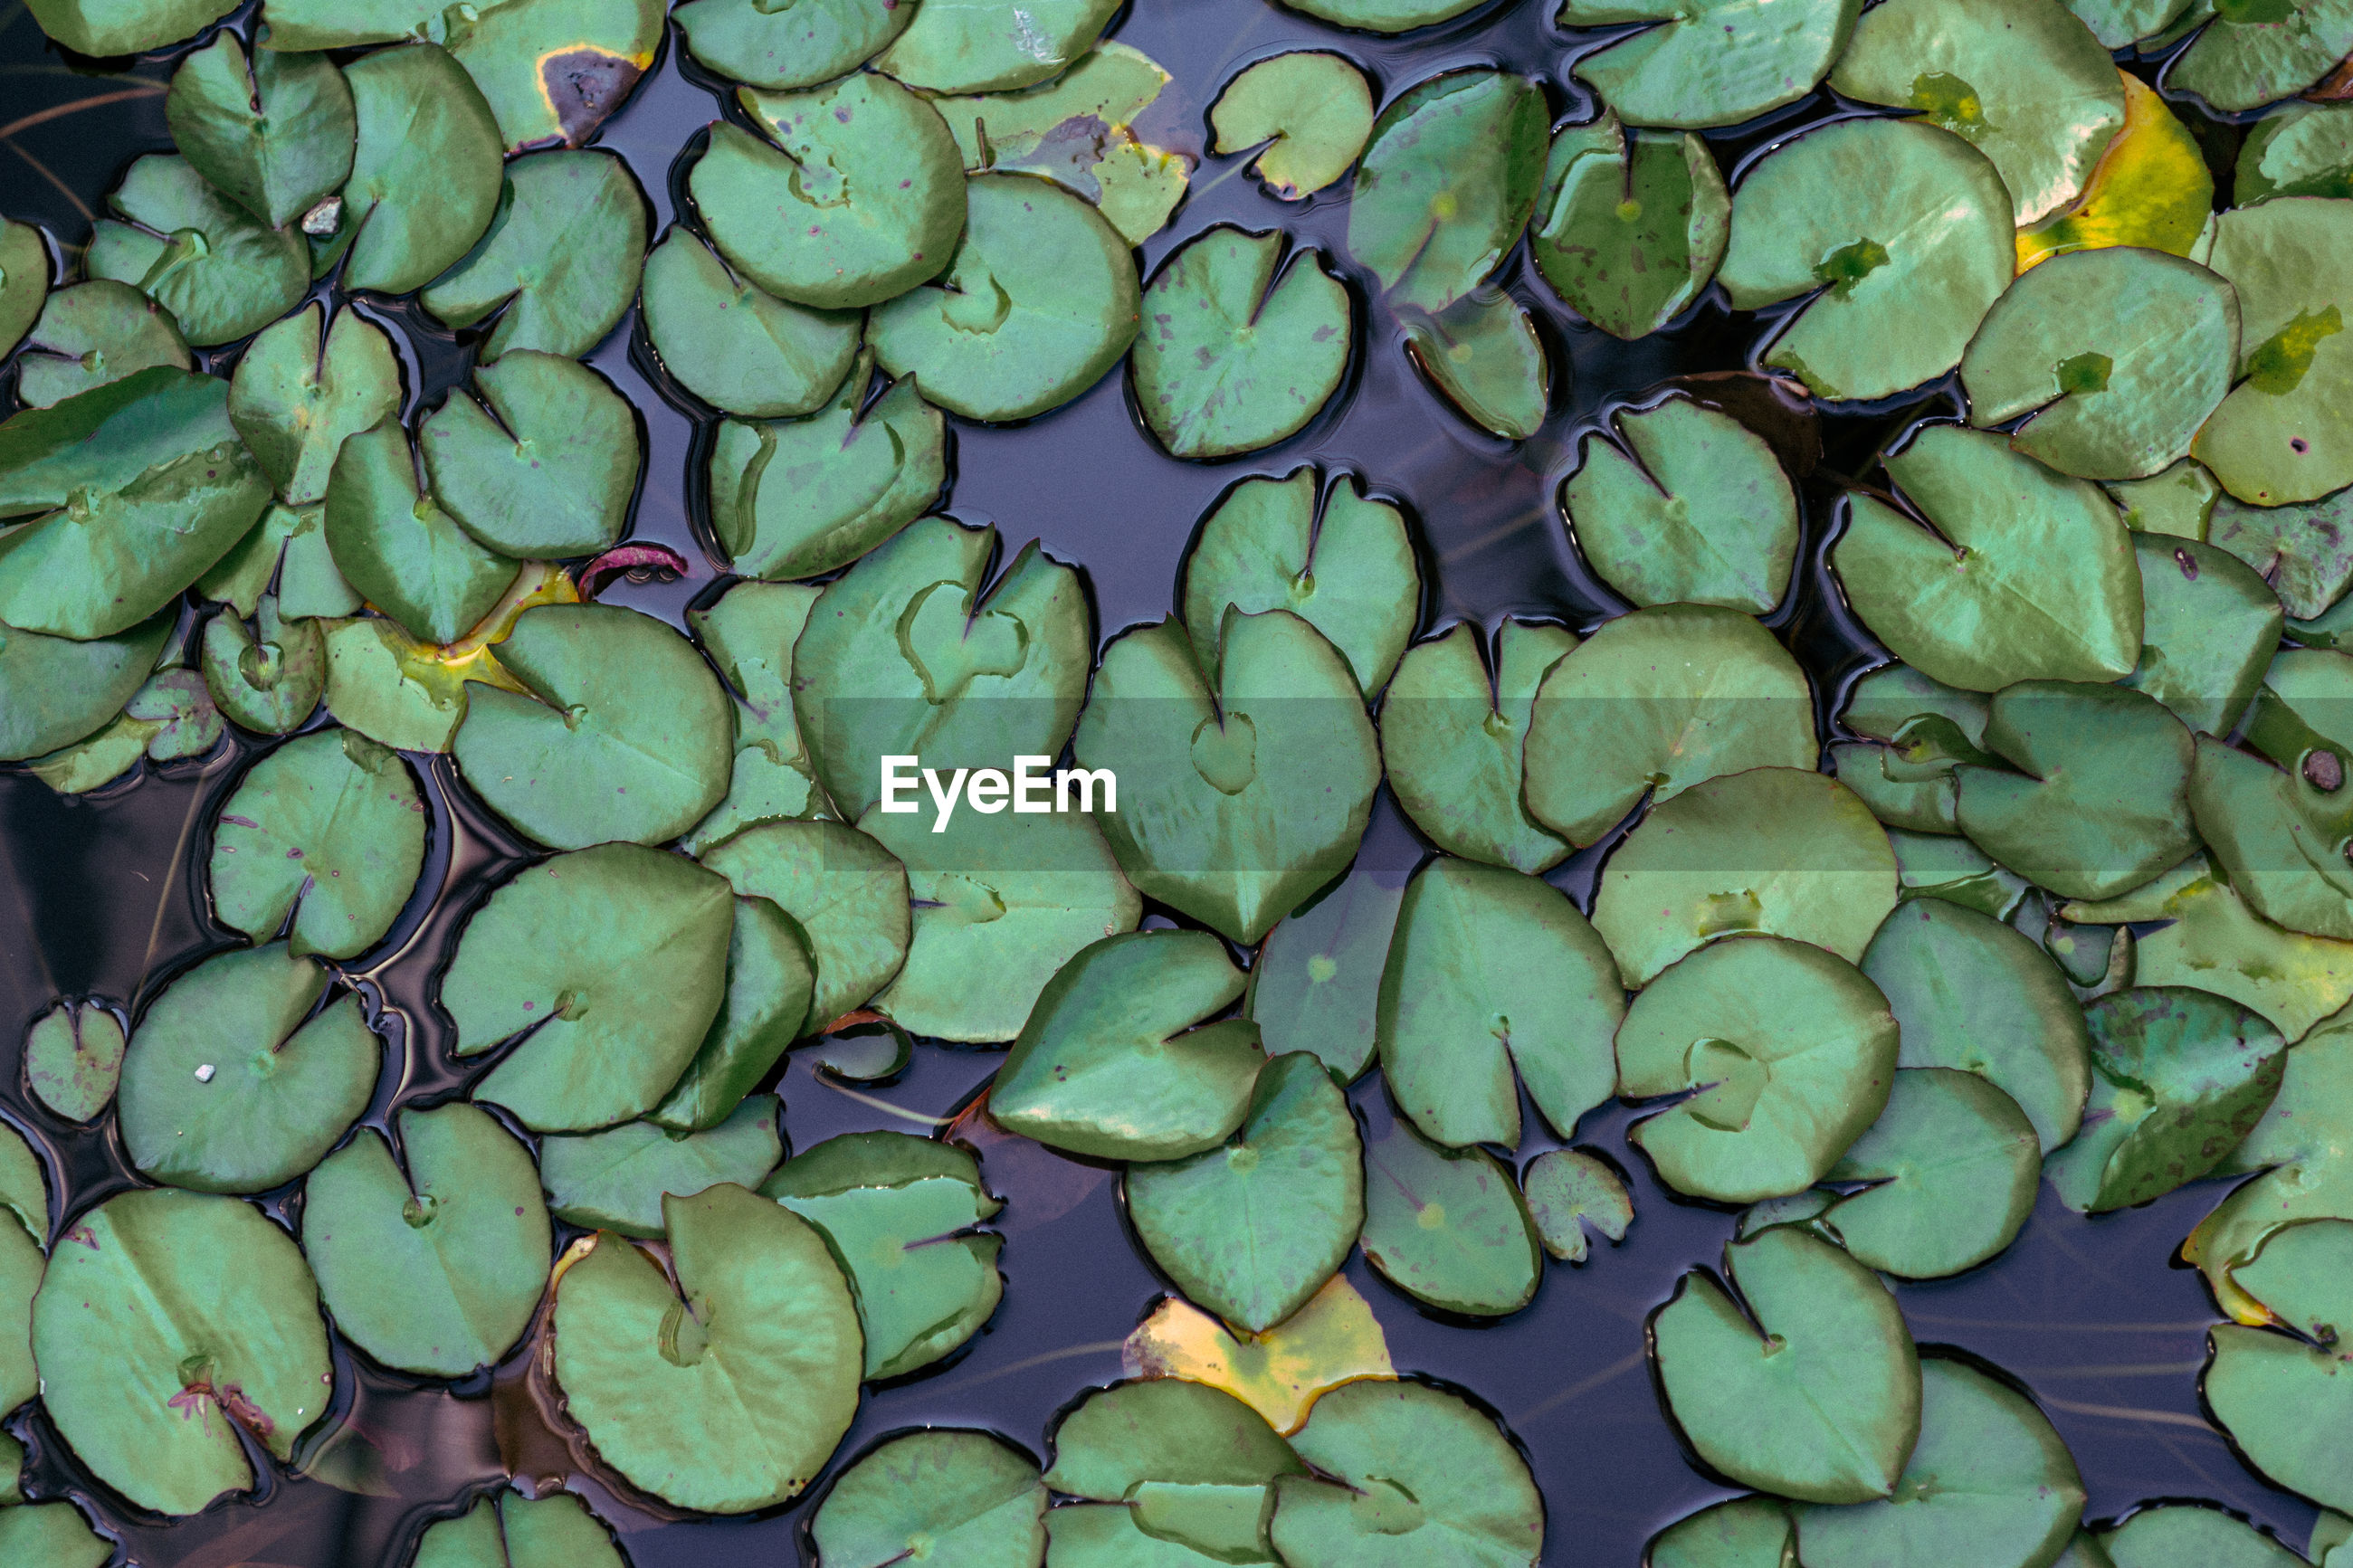 FULL FRAME SHOT OF WATER LILY LEAVES